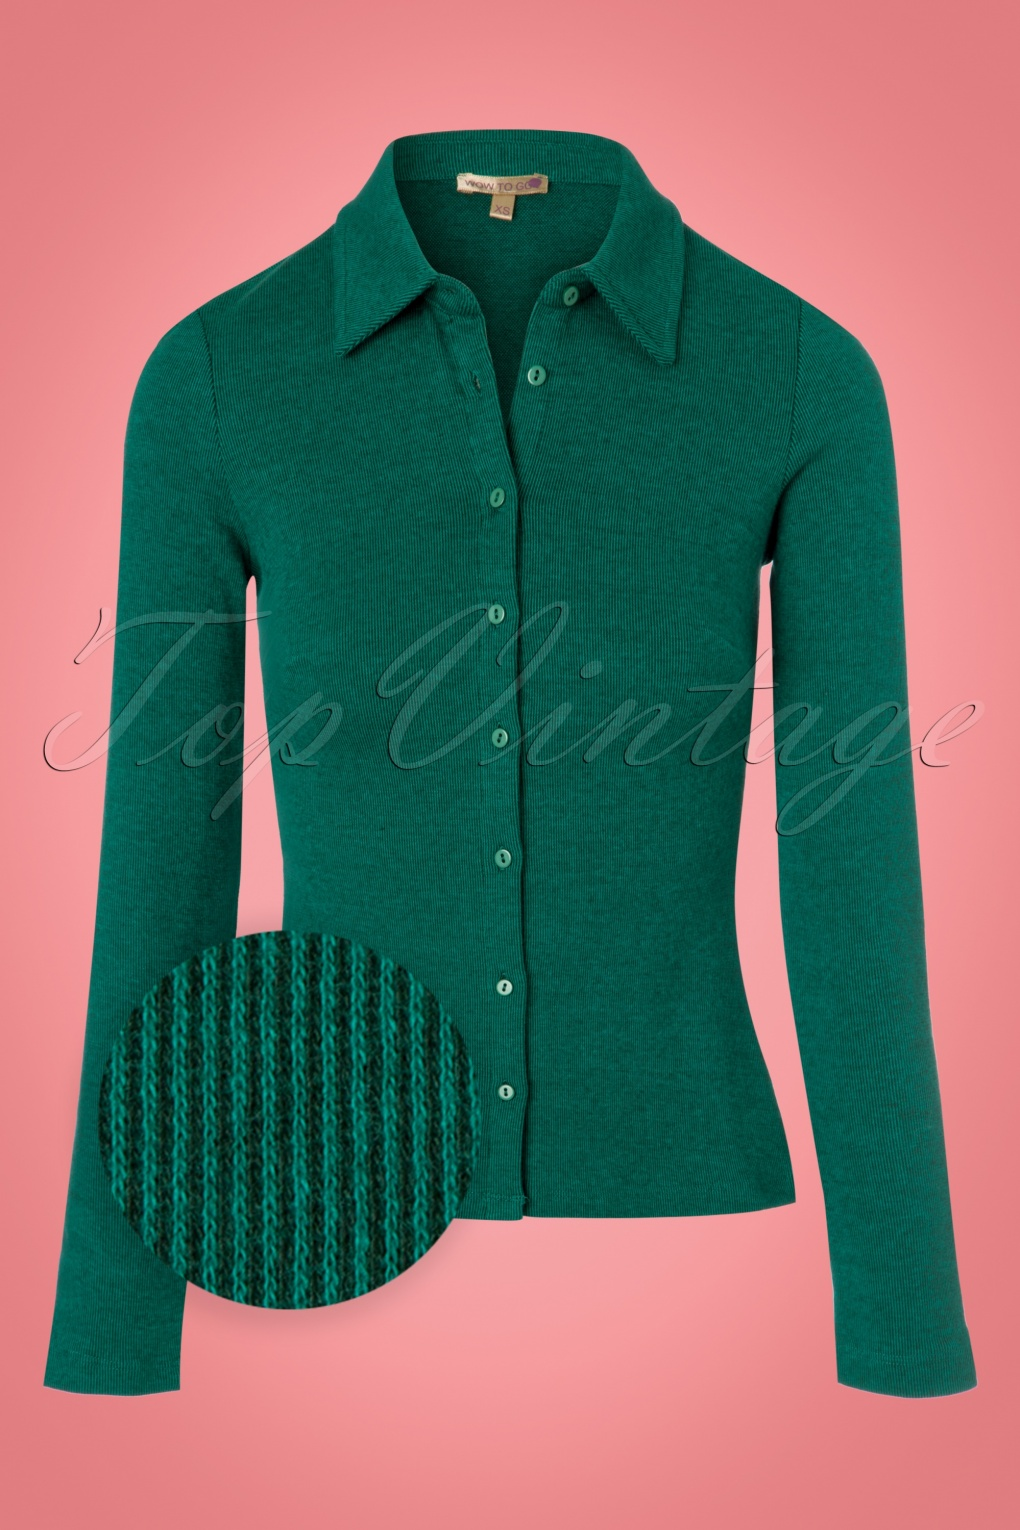 1960s -1970s Blouses, Shirts and Tops 60s Pole Blouse in Green £53.34 AT vintagedancer.com